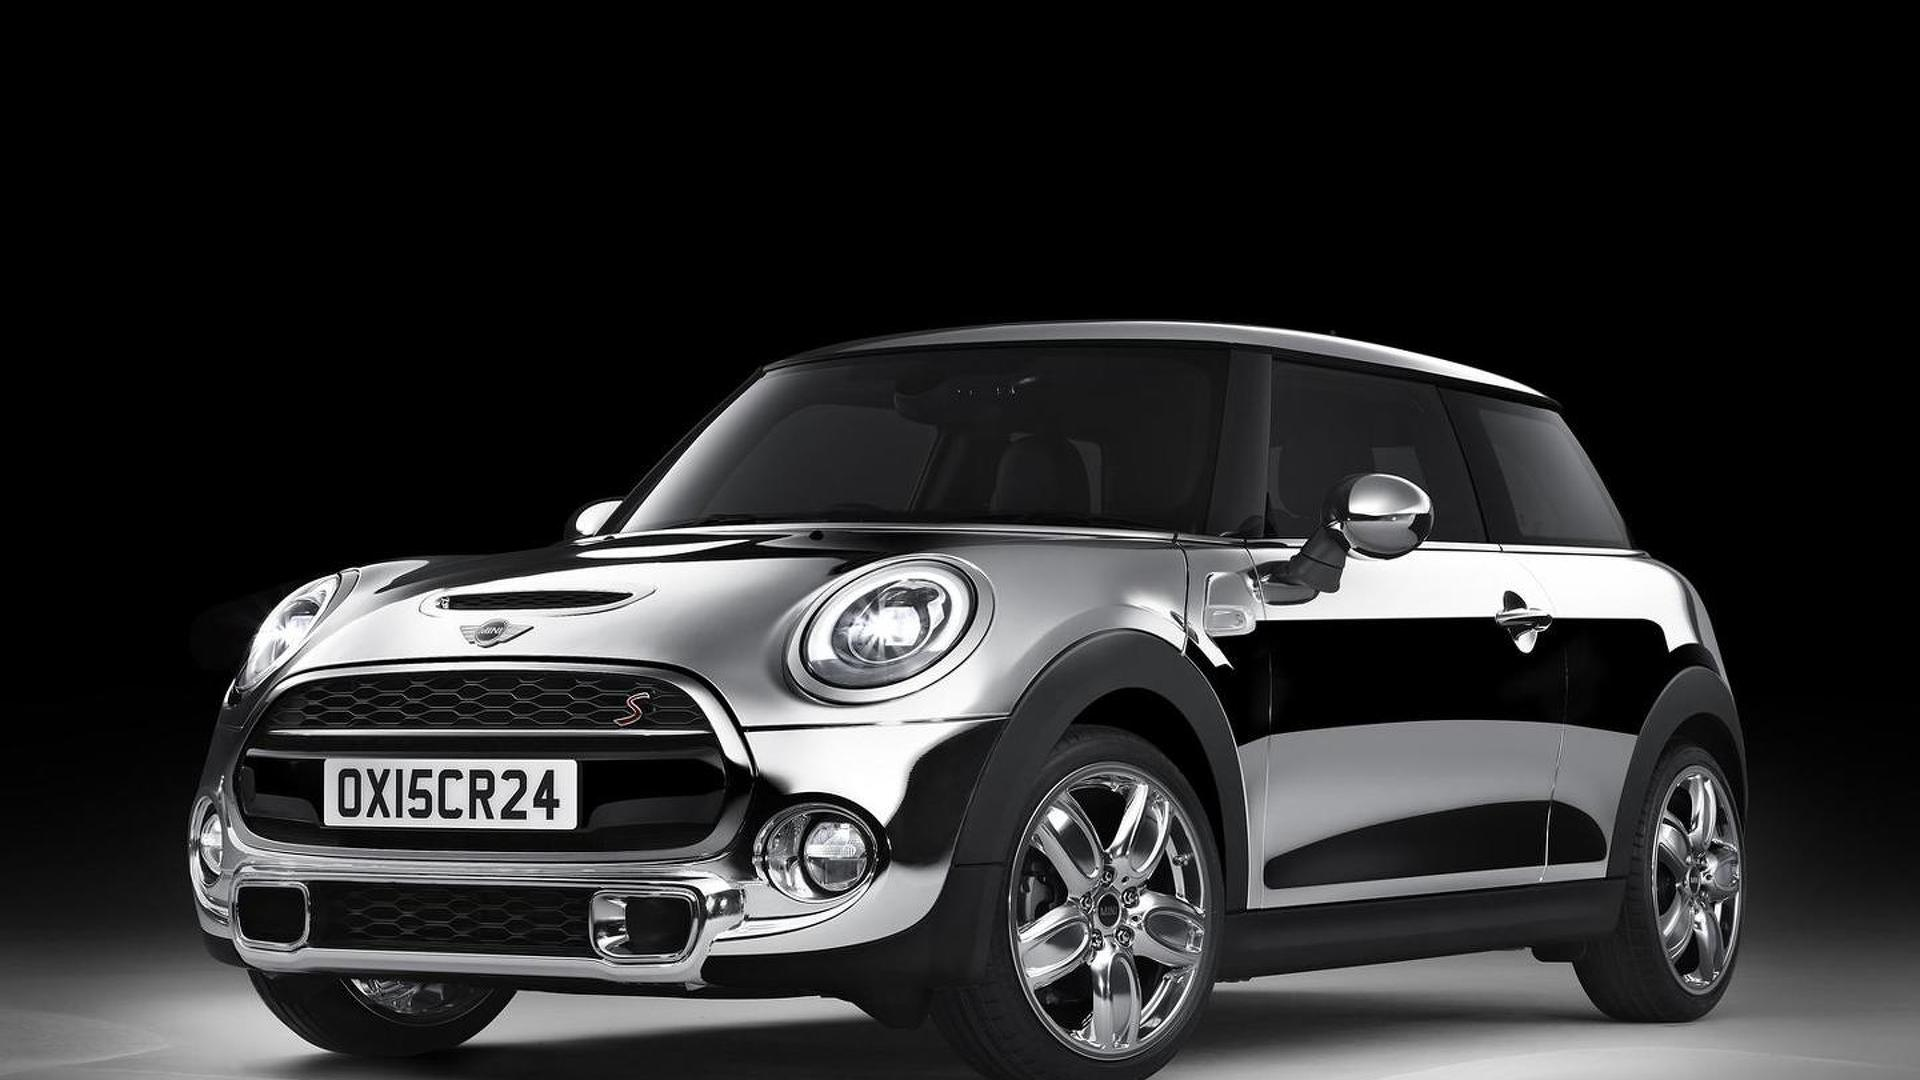 MINI three-door hatch gets shiny Chrome Line Exterior Deluxe